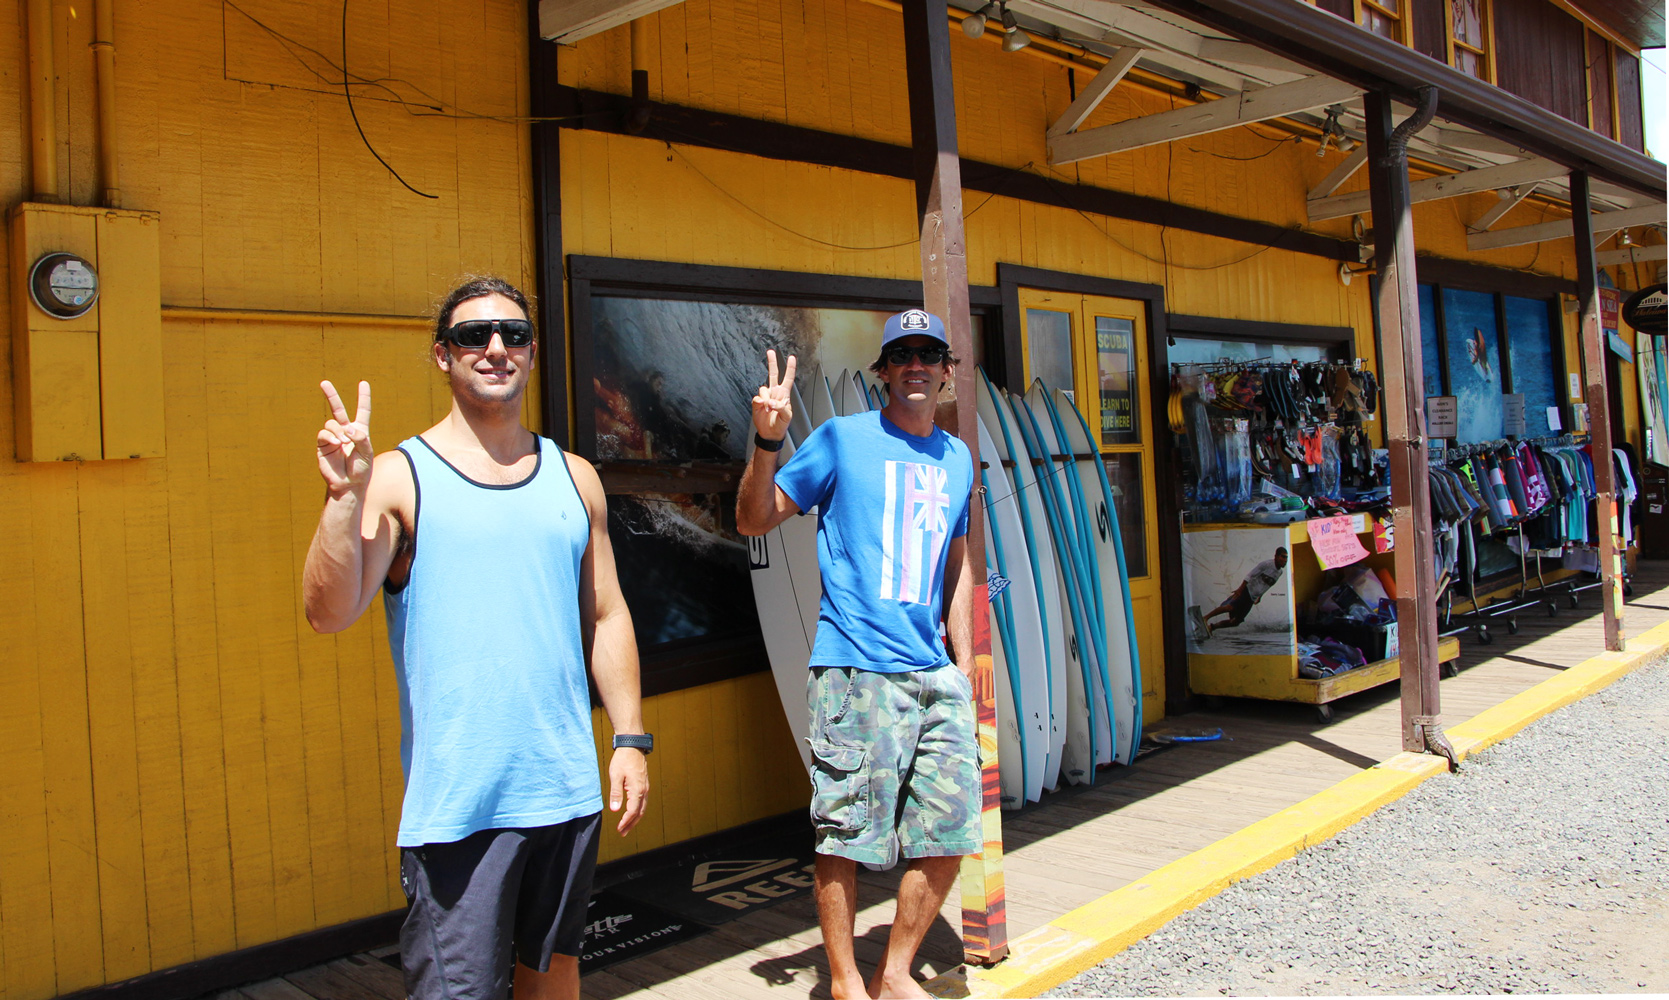 Colton Cruse and Mauricio Abreu at Surf N Sea